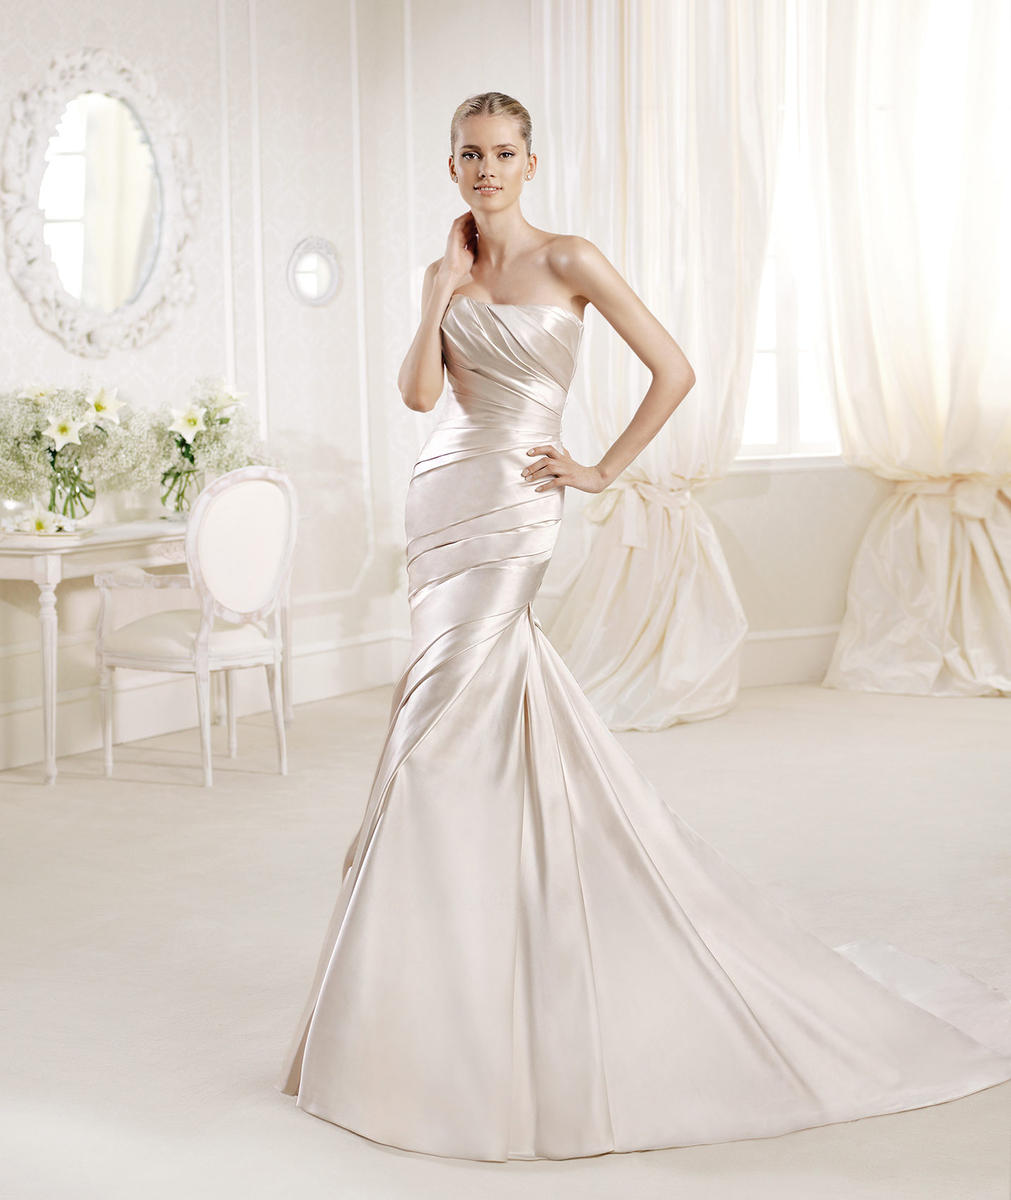 La sposa in stock sale dresses blossoms bridal formal dress store fanal la sposa instock sale dress ombrellifo Images